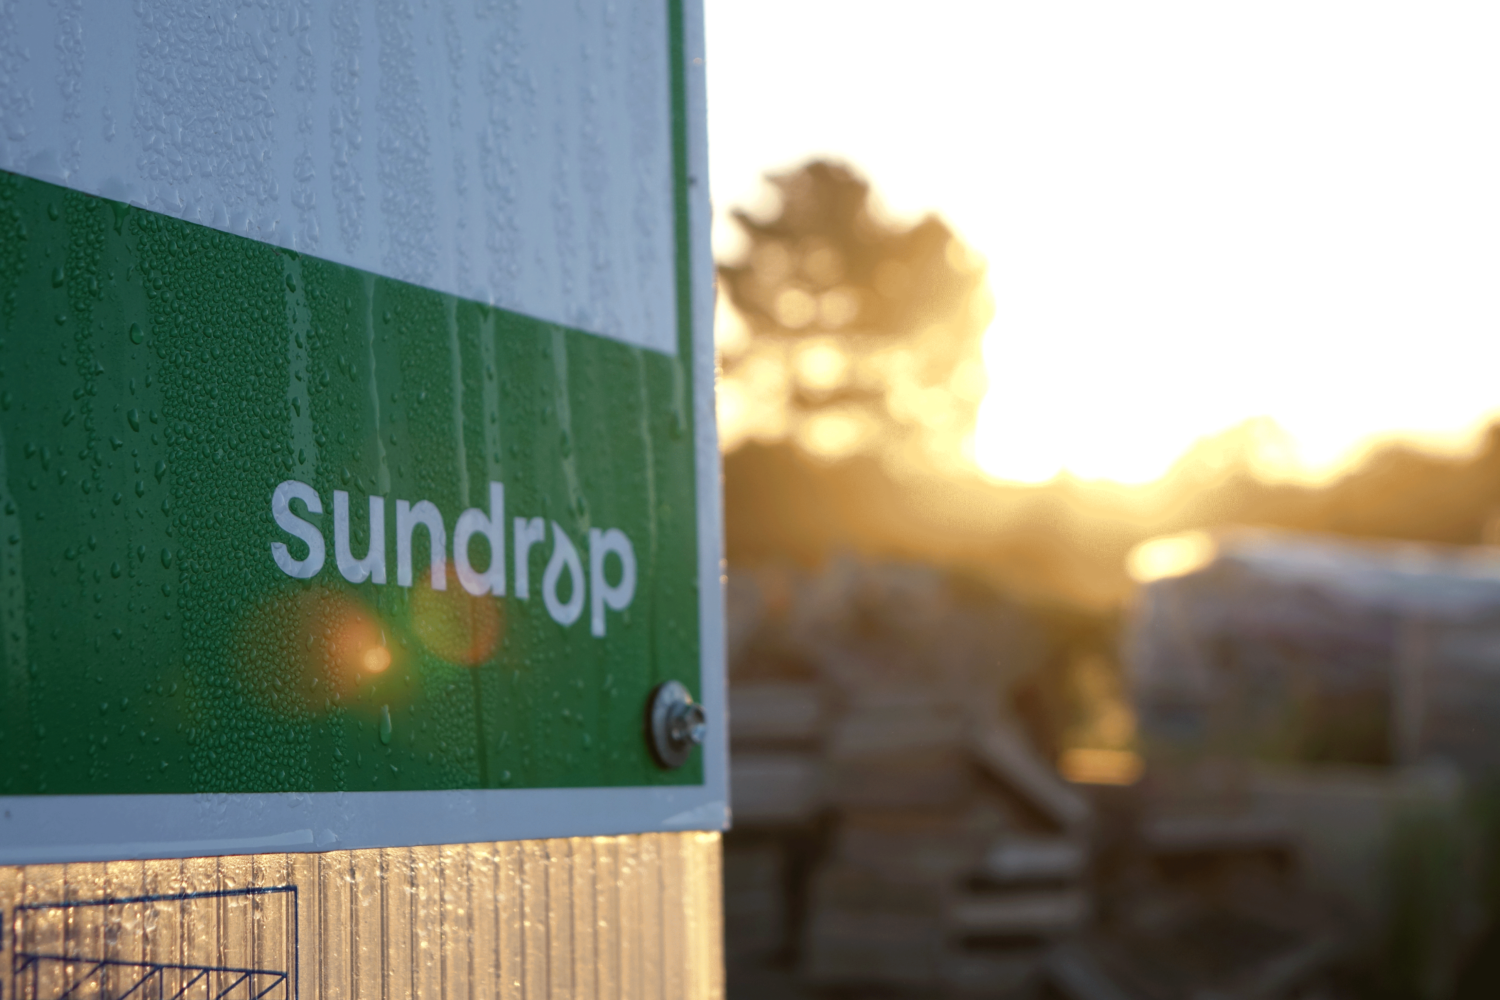 sundrop_sign_01